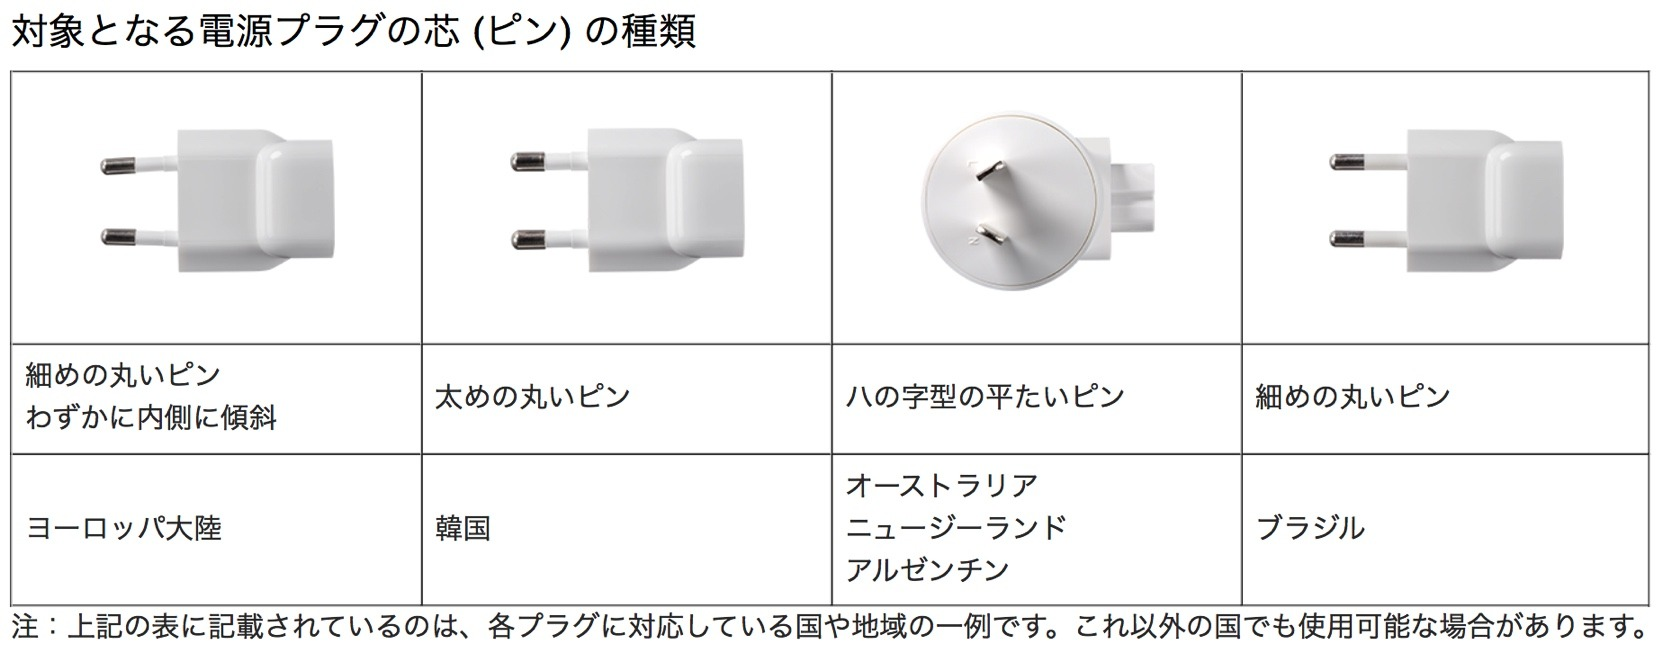 apple-acpower1